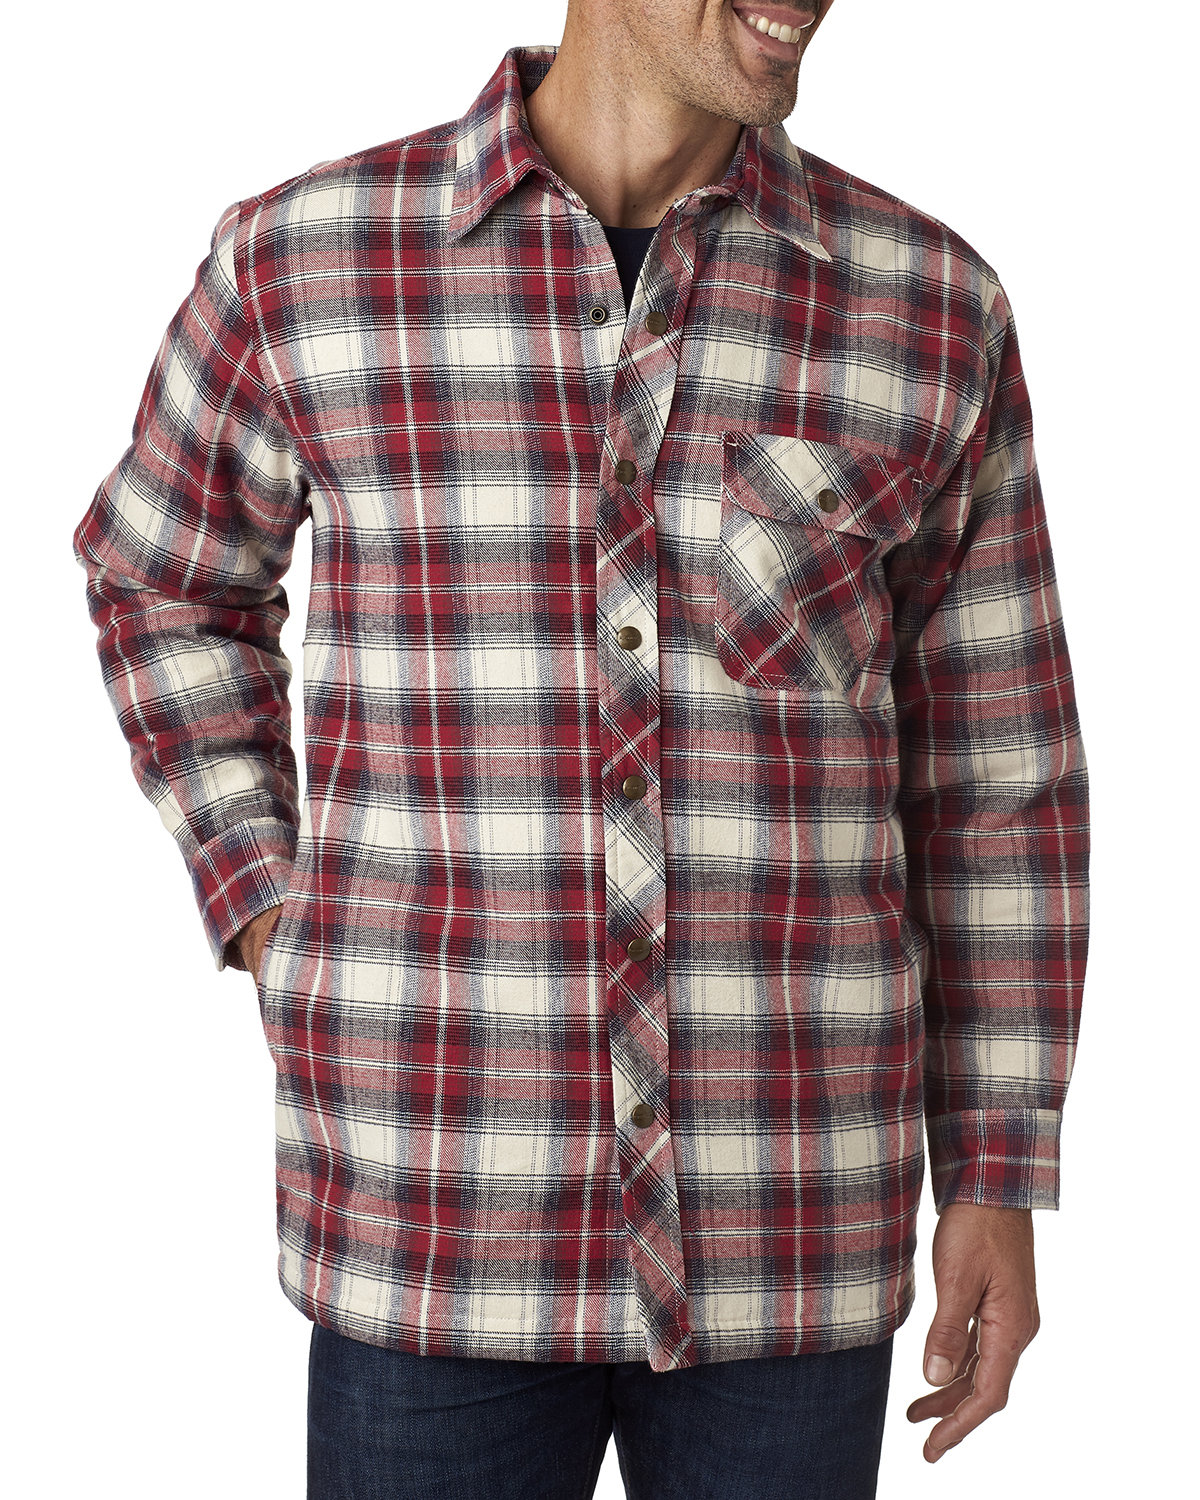 Backpacker Men's Tall Flannel Shirt Jacket with Quilt Lining INDEPENDENT